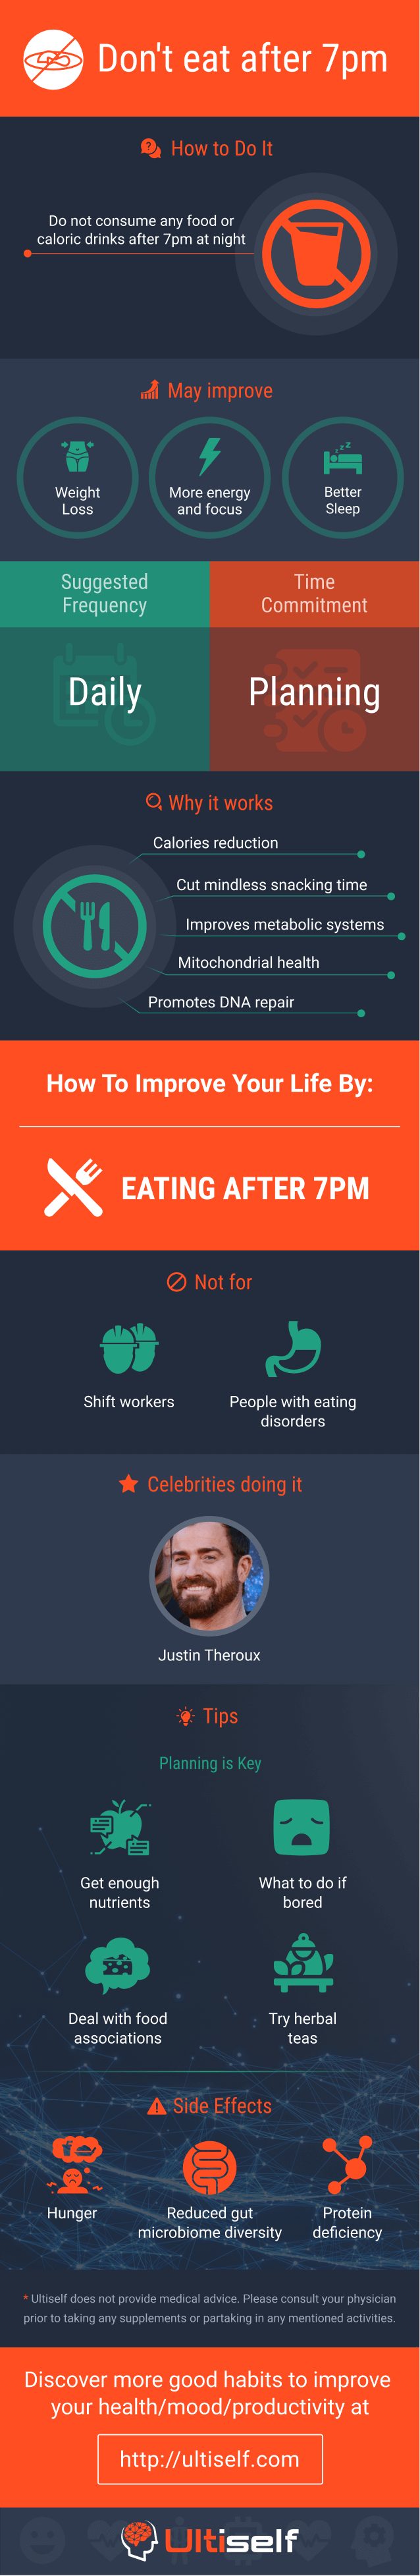 Don't eat after 7pm infographic